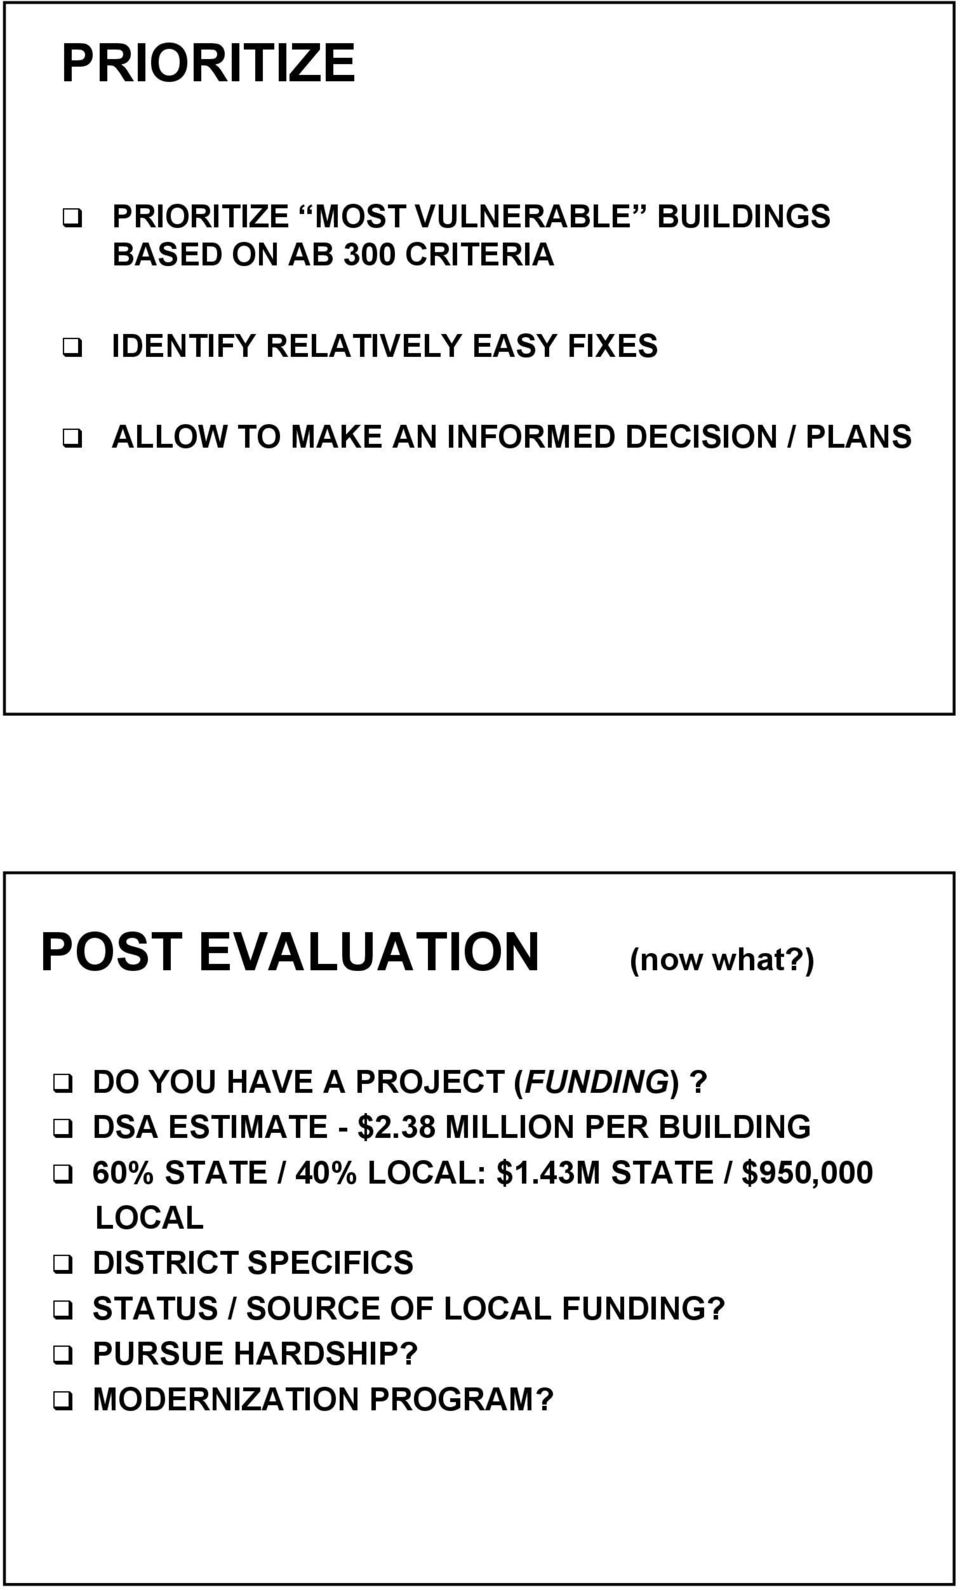 ) DO YOU HAVE A PROJECT (FUNDING)? DSA ESTIMATE - $2.